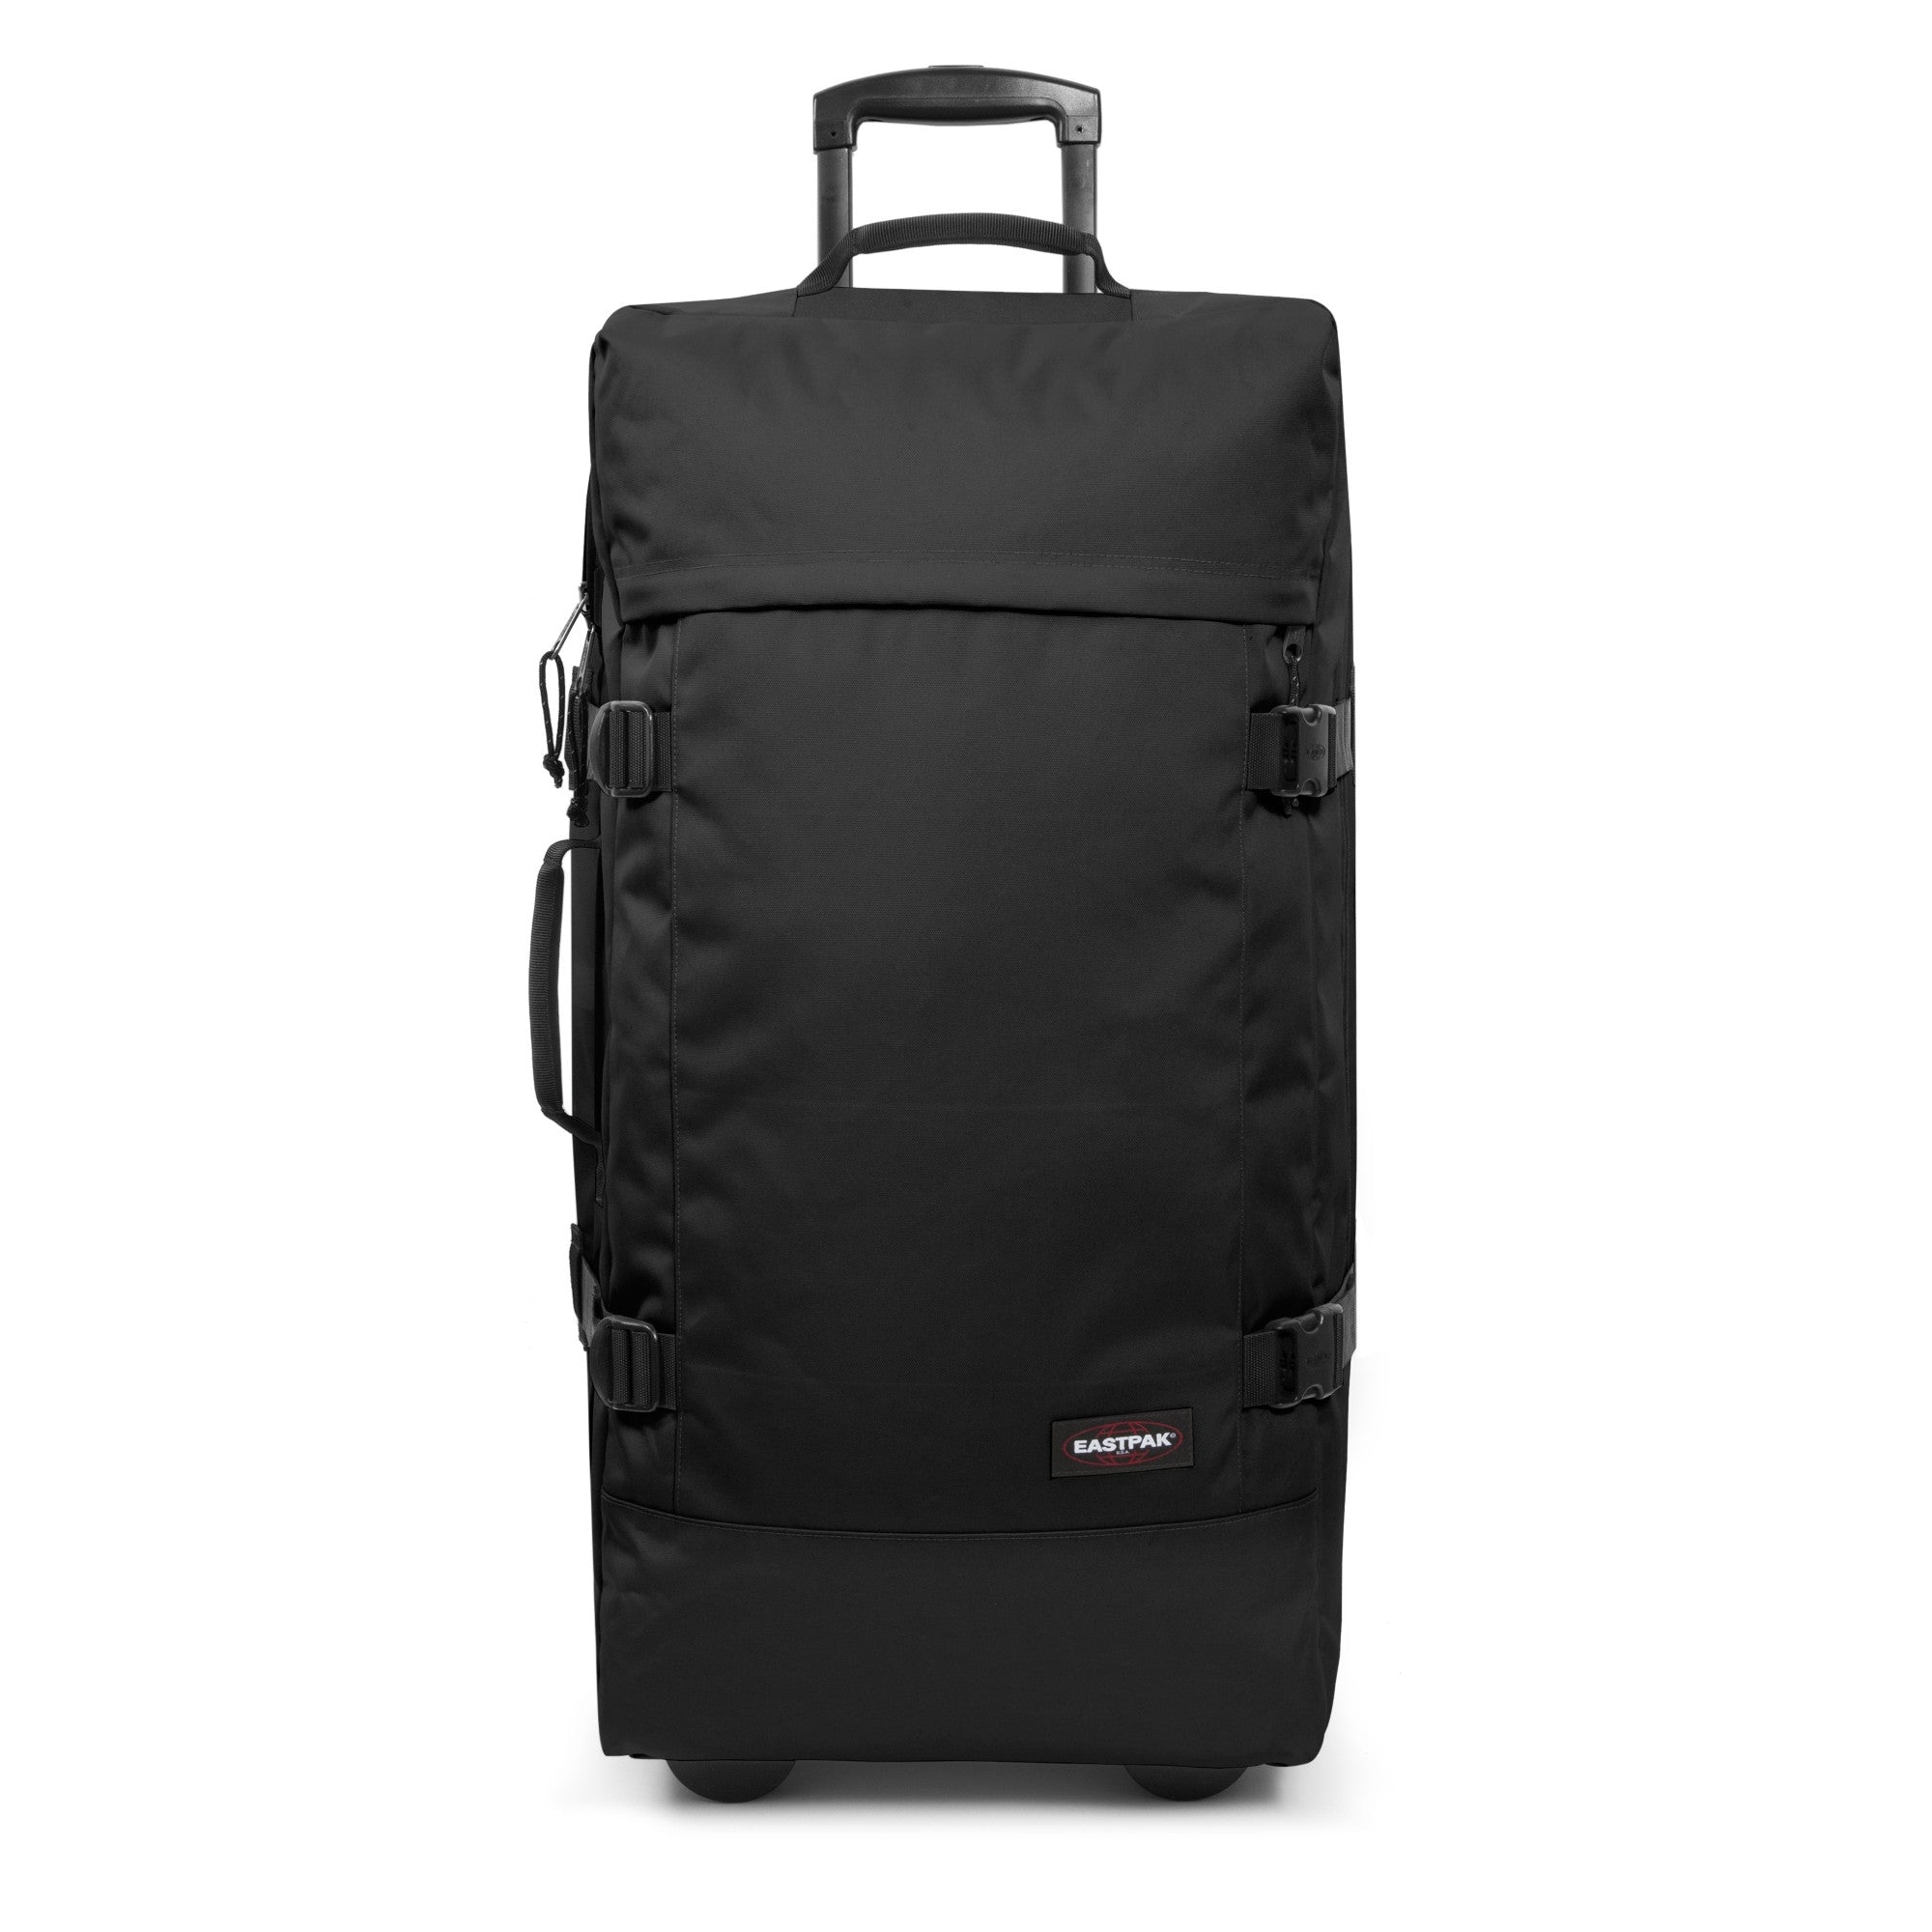 Eastpak Tranverz L 79cm 2-Wheel Soft-Sided Holdall